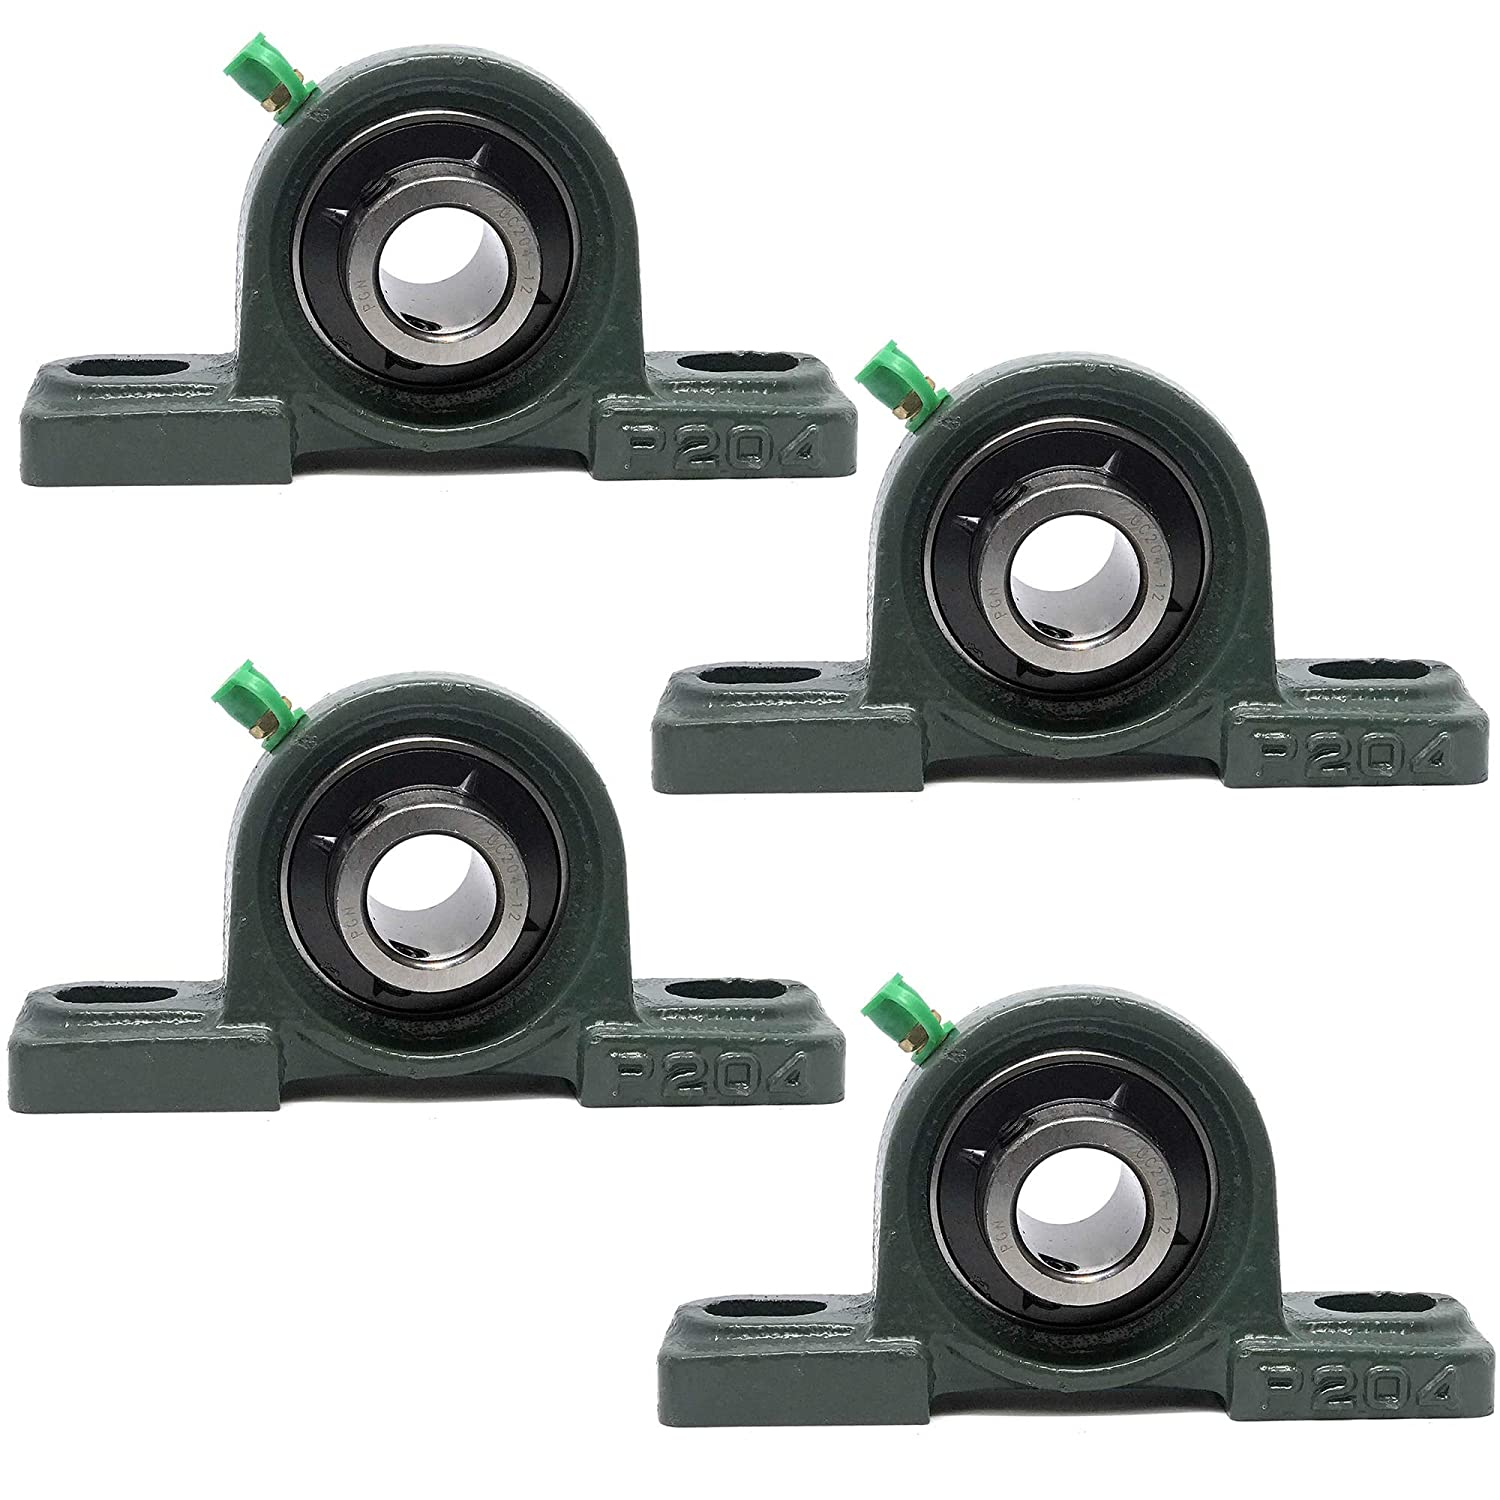 PGN - UCP204-12 Selling and selling Pillow Block Mounted Bore Bearing 3 Ball 4